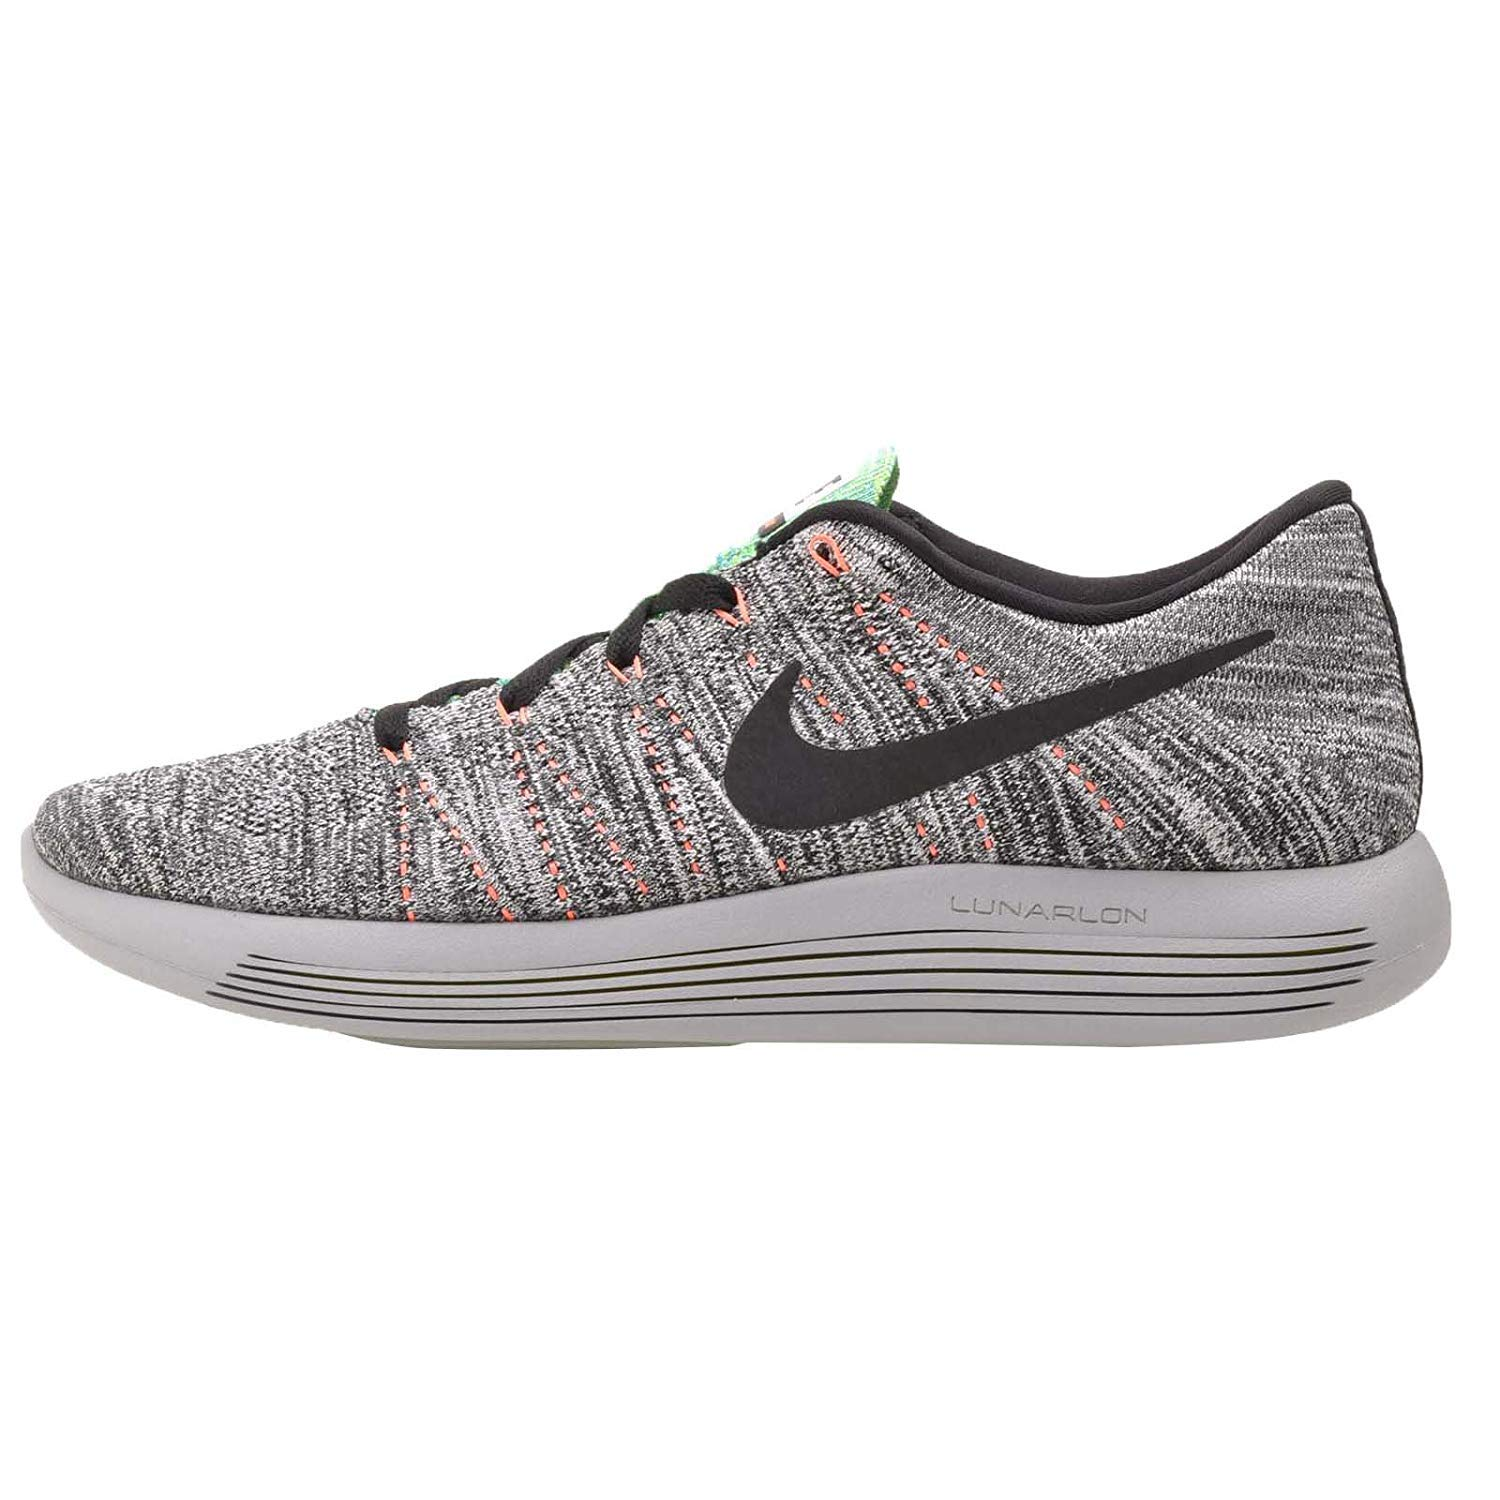 best website 978d0 be5f9 Mens Nike LUNAREPIC Low Flyknit Running Trainers 843764 100 (UK 8.5)   Amazon.co.uk  Shoes   Bags